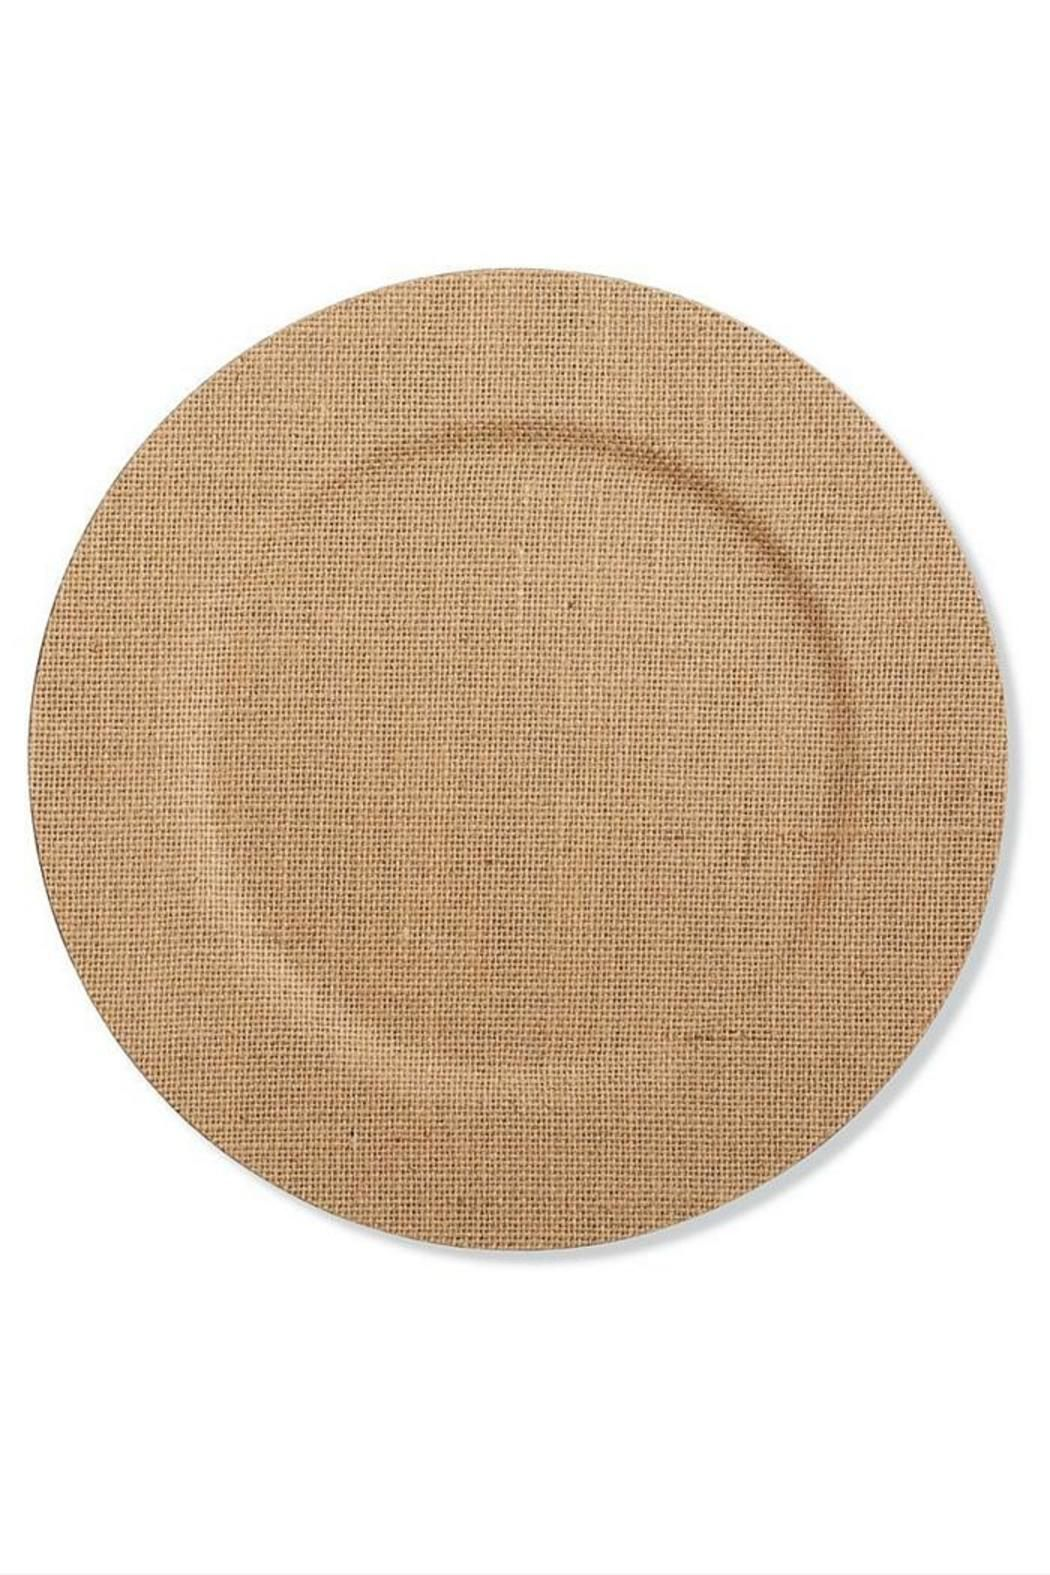 Mud Pie Burlap Charger Plate | Virginia, Home and The o\'jays